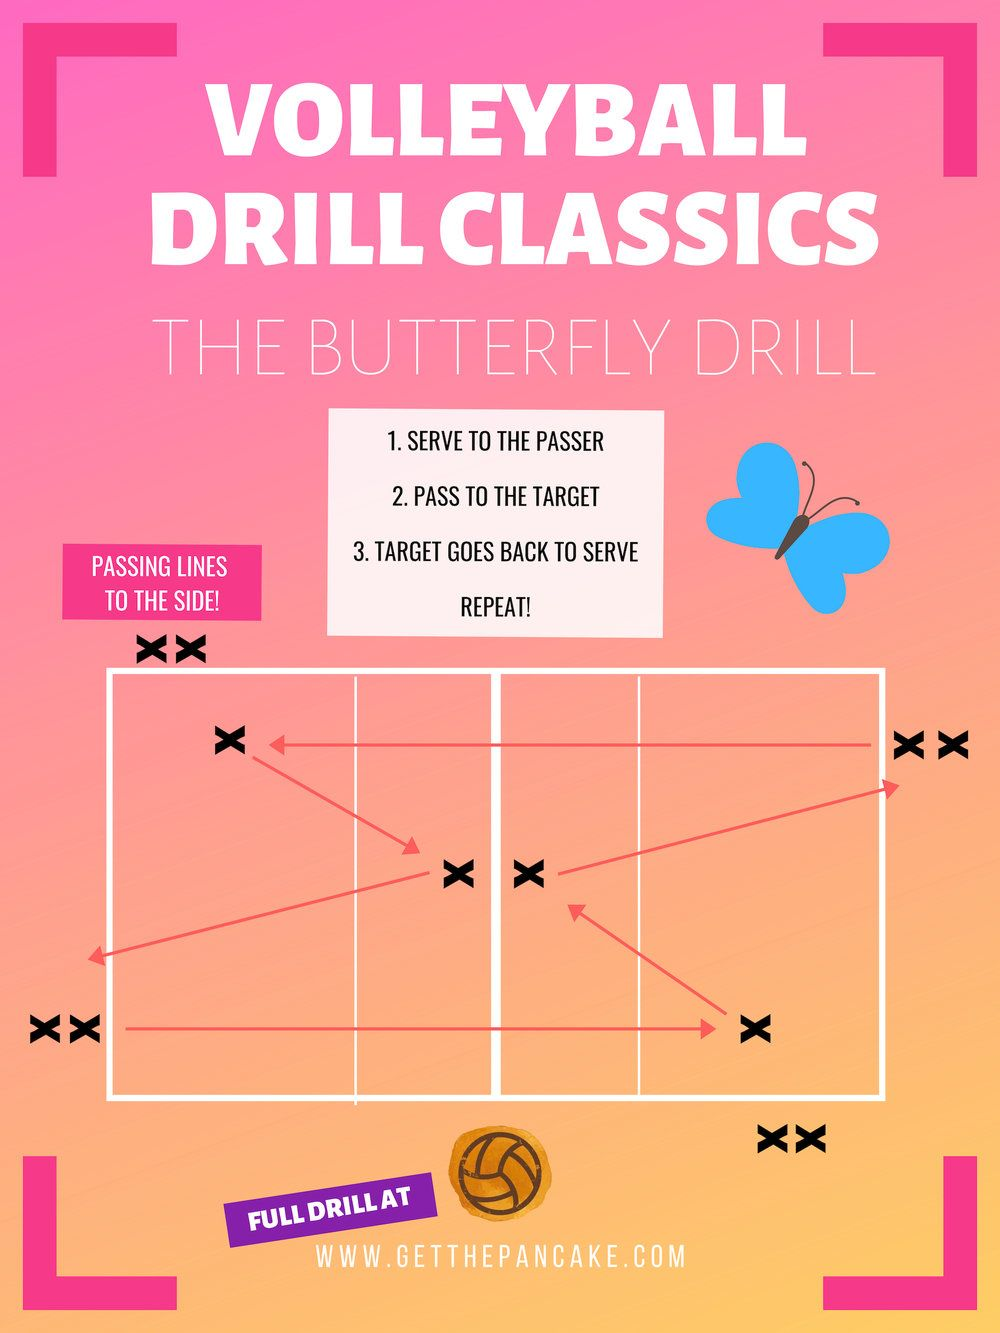 Volleyball Drill Classics The Butterfly Drill Coaching Volleyball Volleyball Drills Volleyball Drills For Beginners